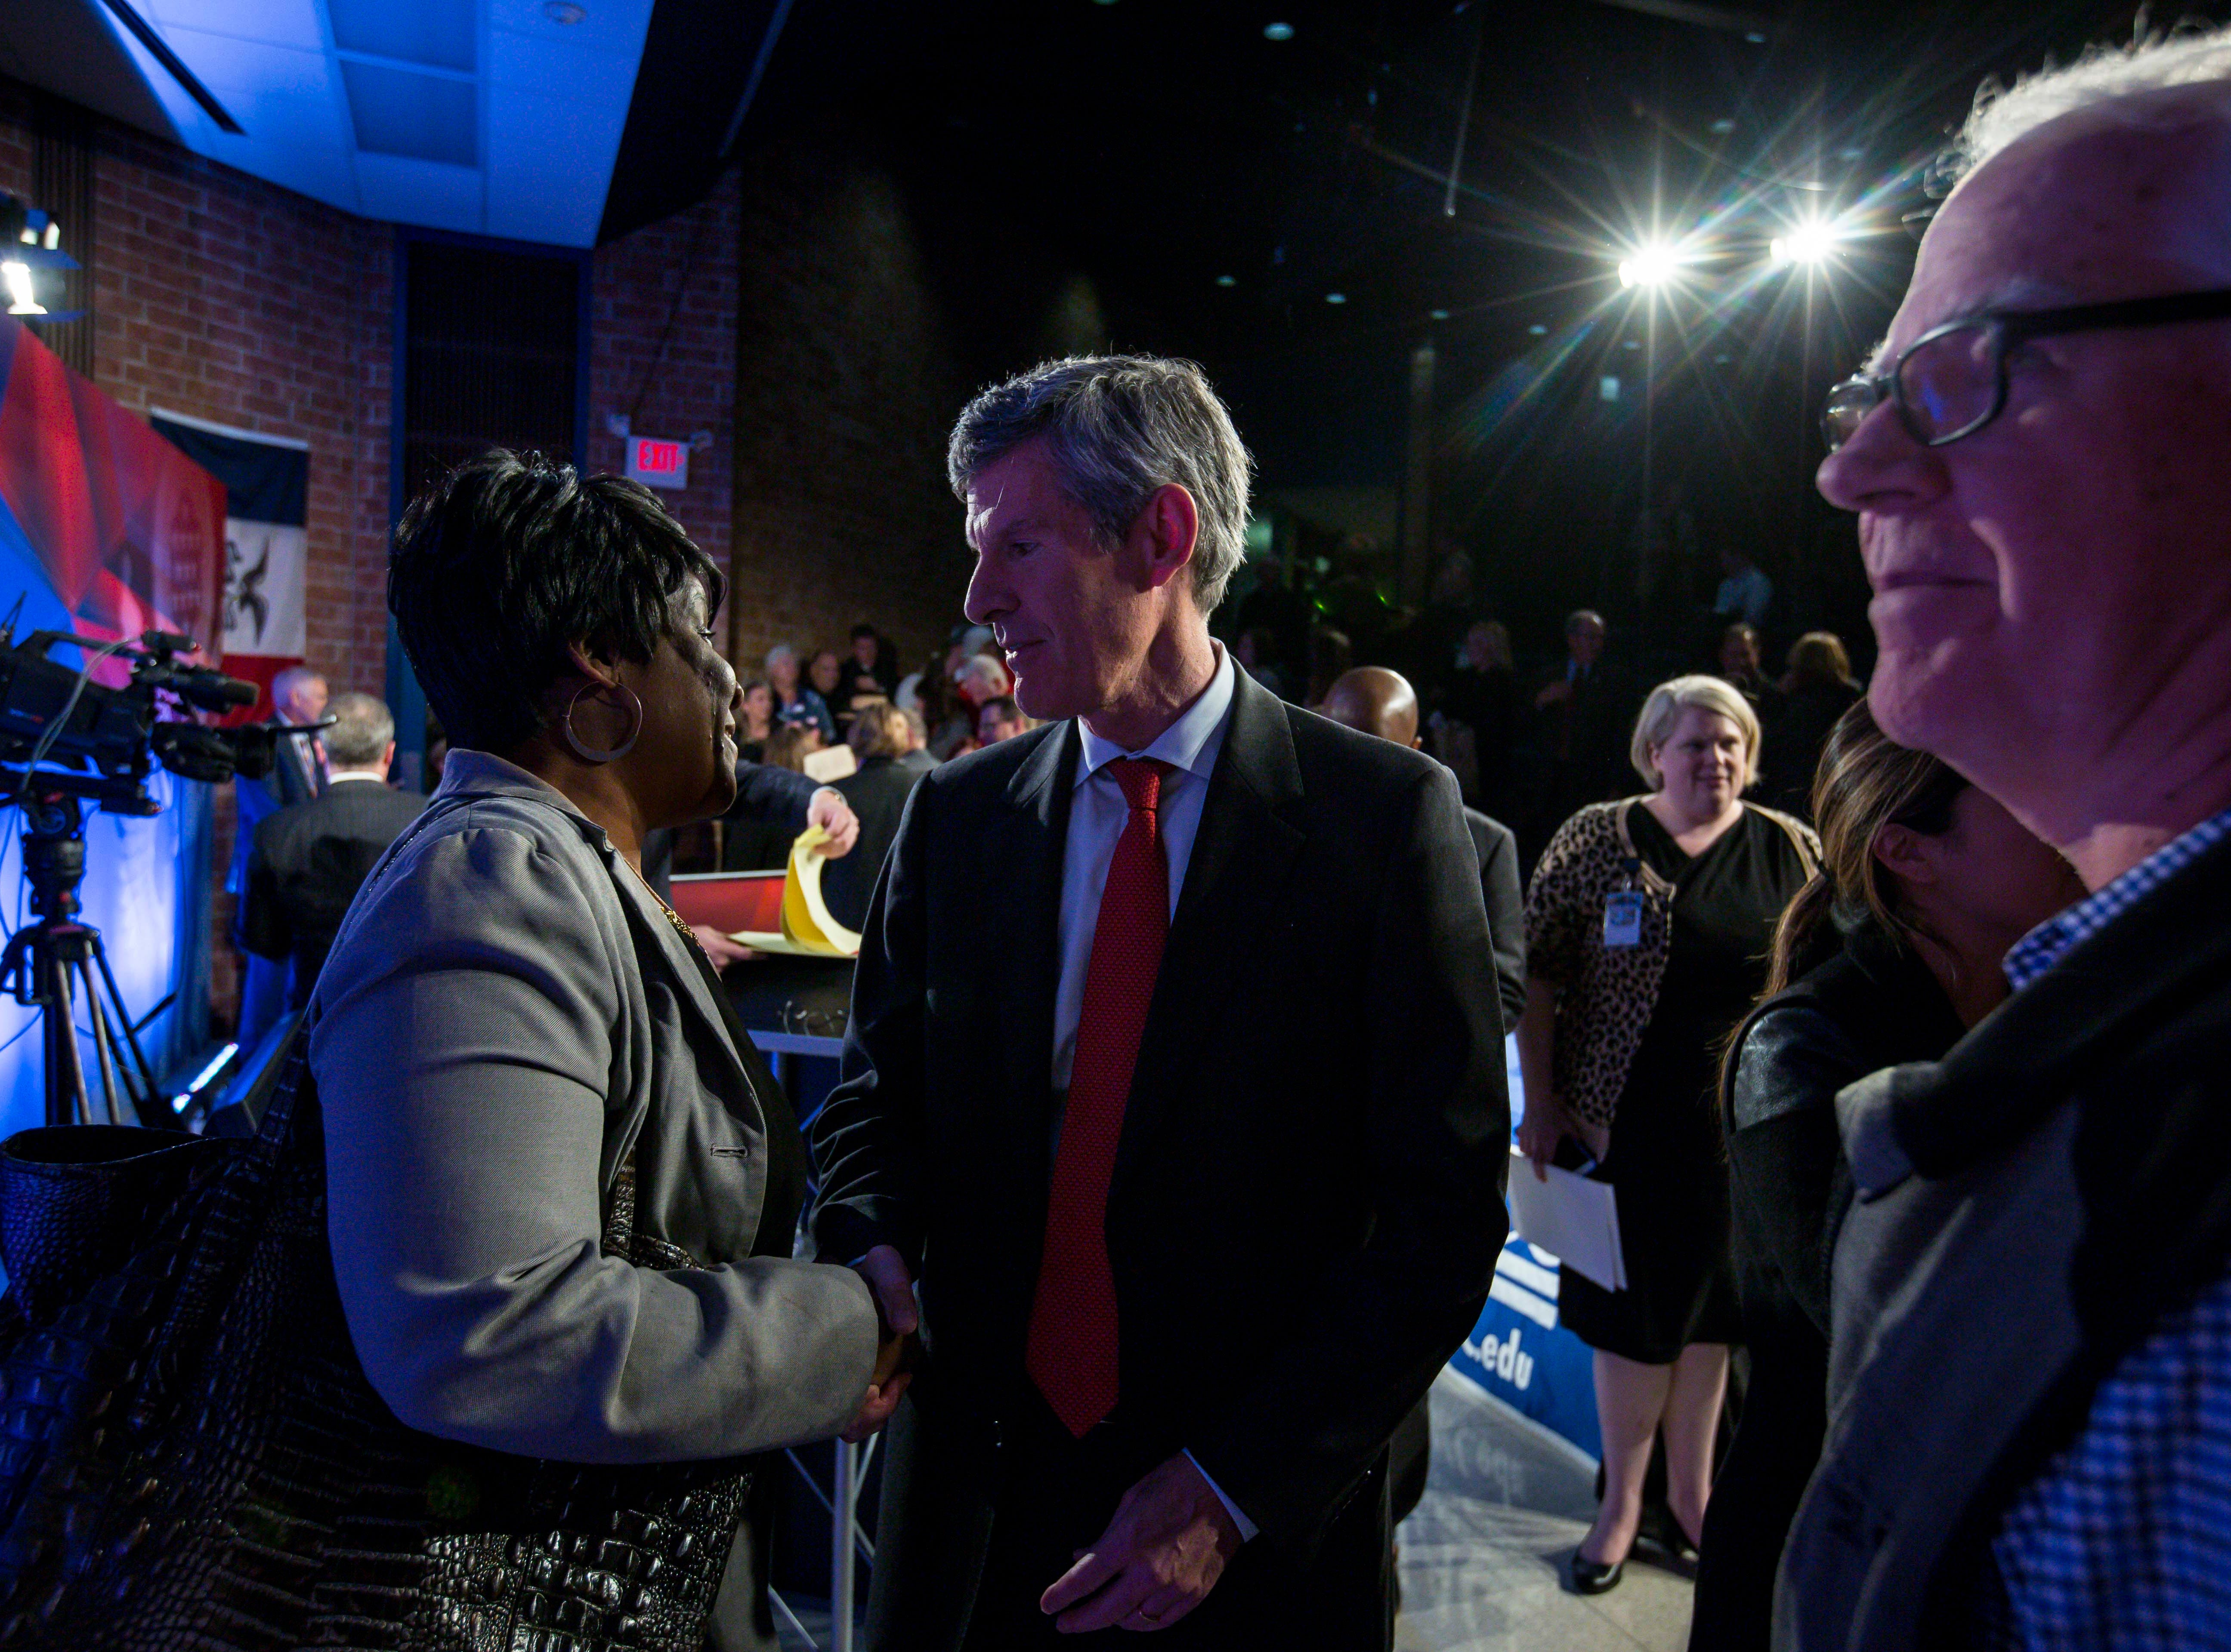 Democratic challenger Fred Hubbell talks to friends after the debate Wednesday, Oct. 10, 2018, at Des Moines Area Community College in Ankeny, Iowa.